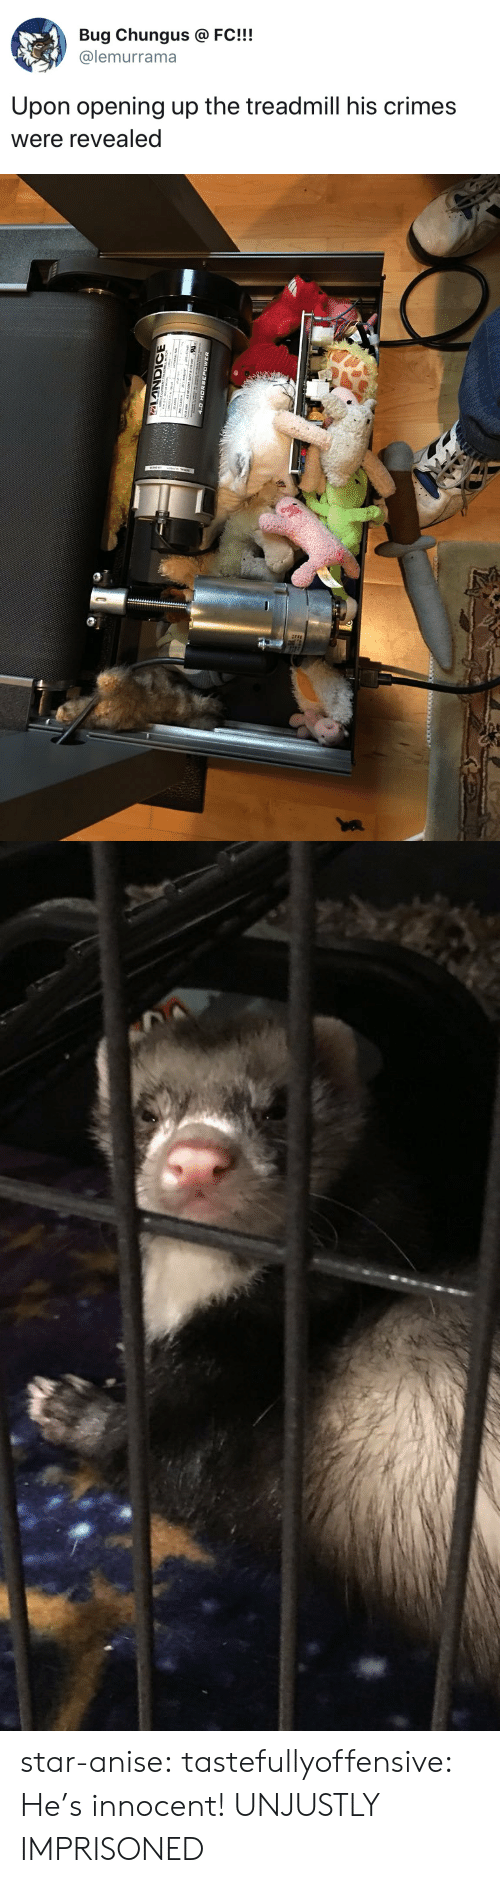 Treadmill: Bug Chungus @FC!!!  @lemurrama  Upon opening up the treadmill his crimes  were revealed star-anise:  tastefullyoffensive: He's innocent! UNJUSTLY IMPRISONED